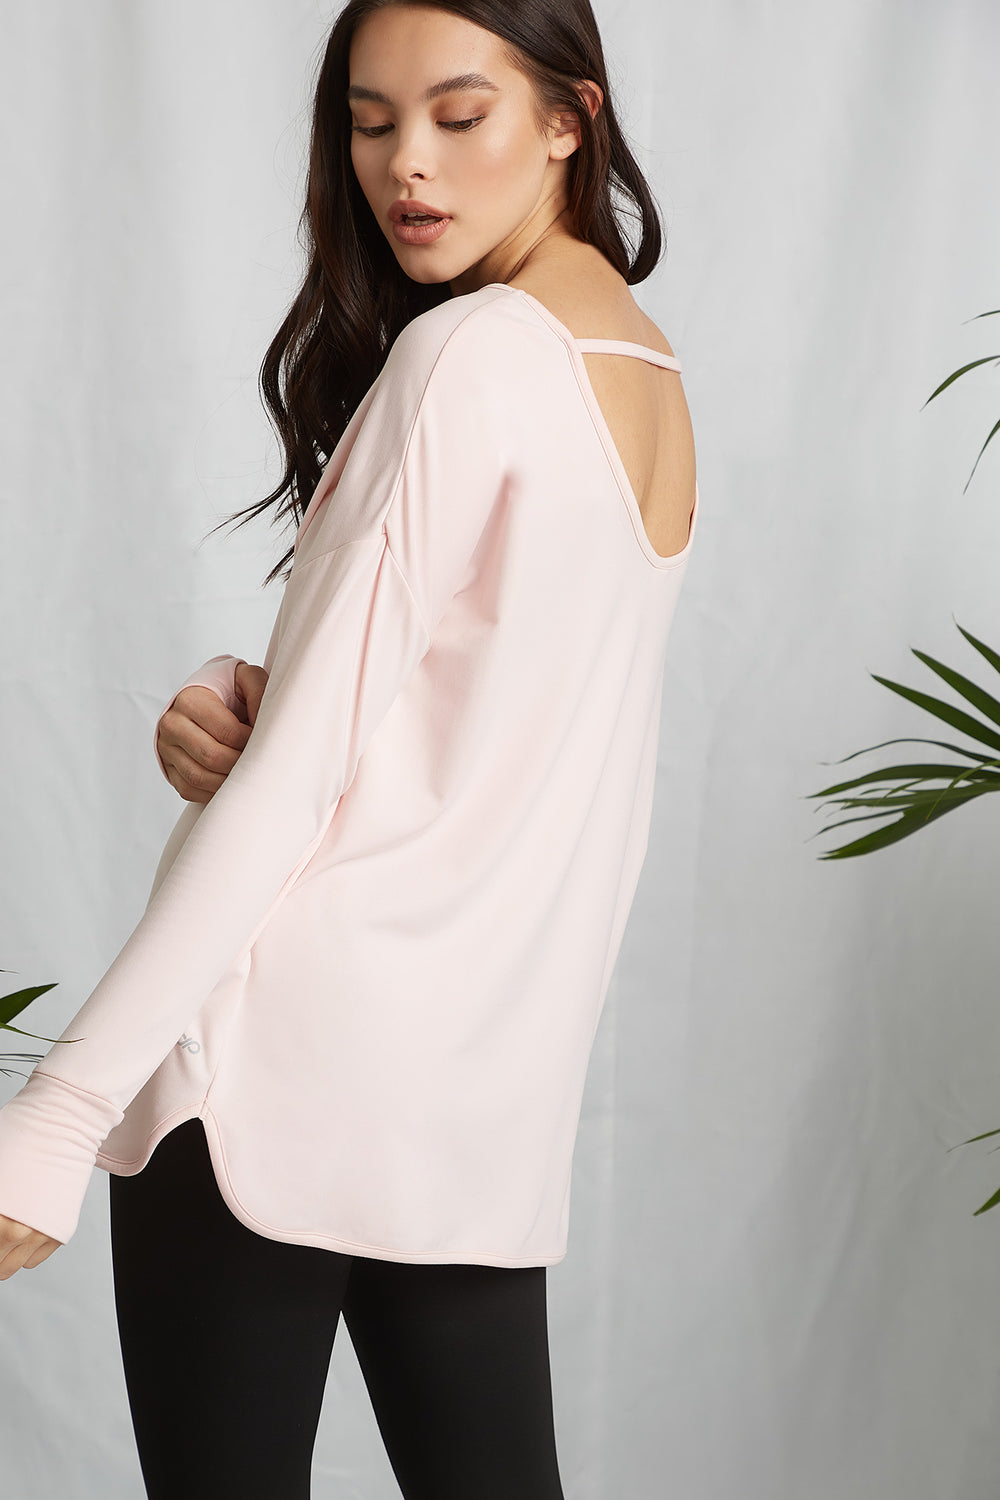 REPREVE®Eco-Friendly Recycled Polyester Keyhole Back Active Long Sleeve Rose